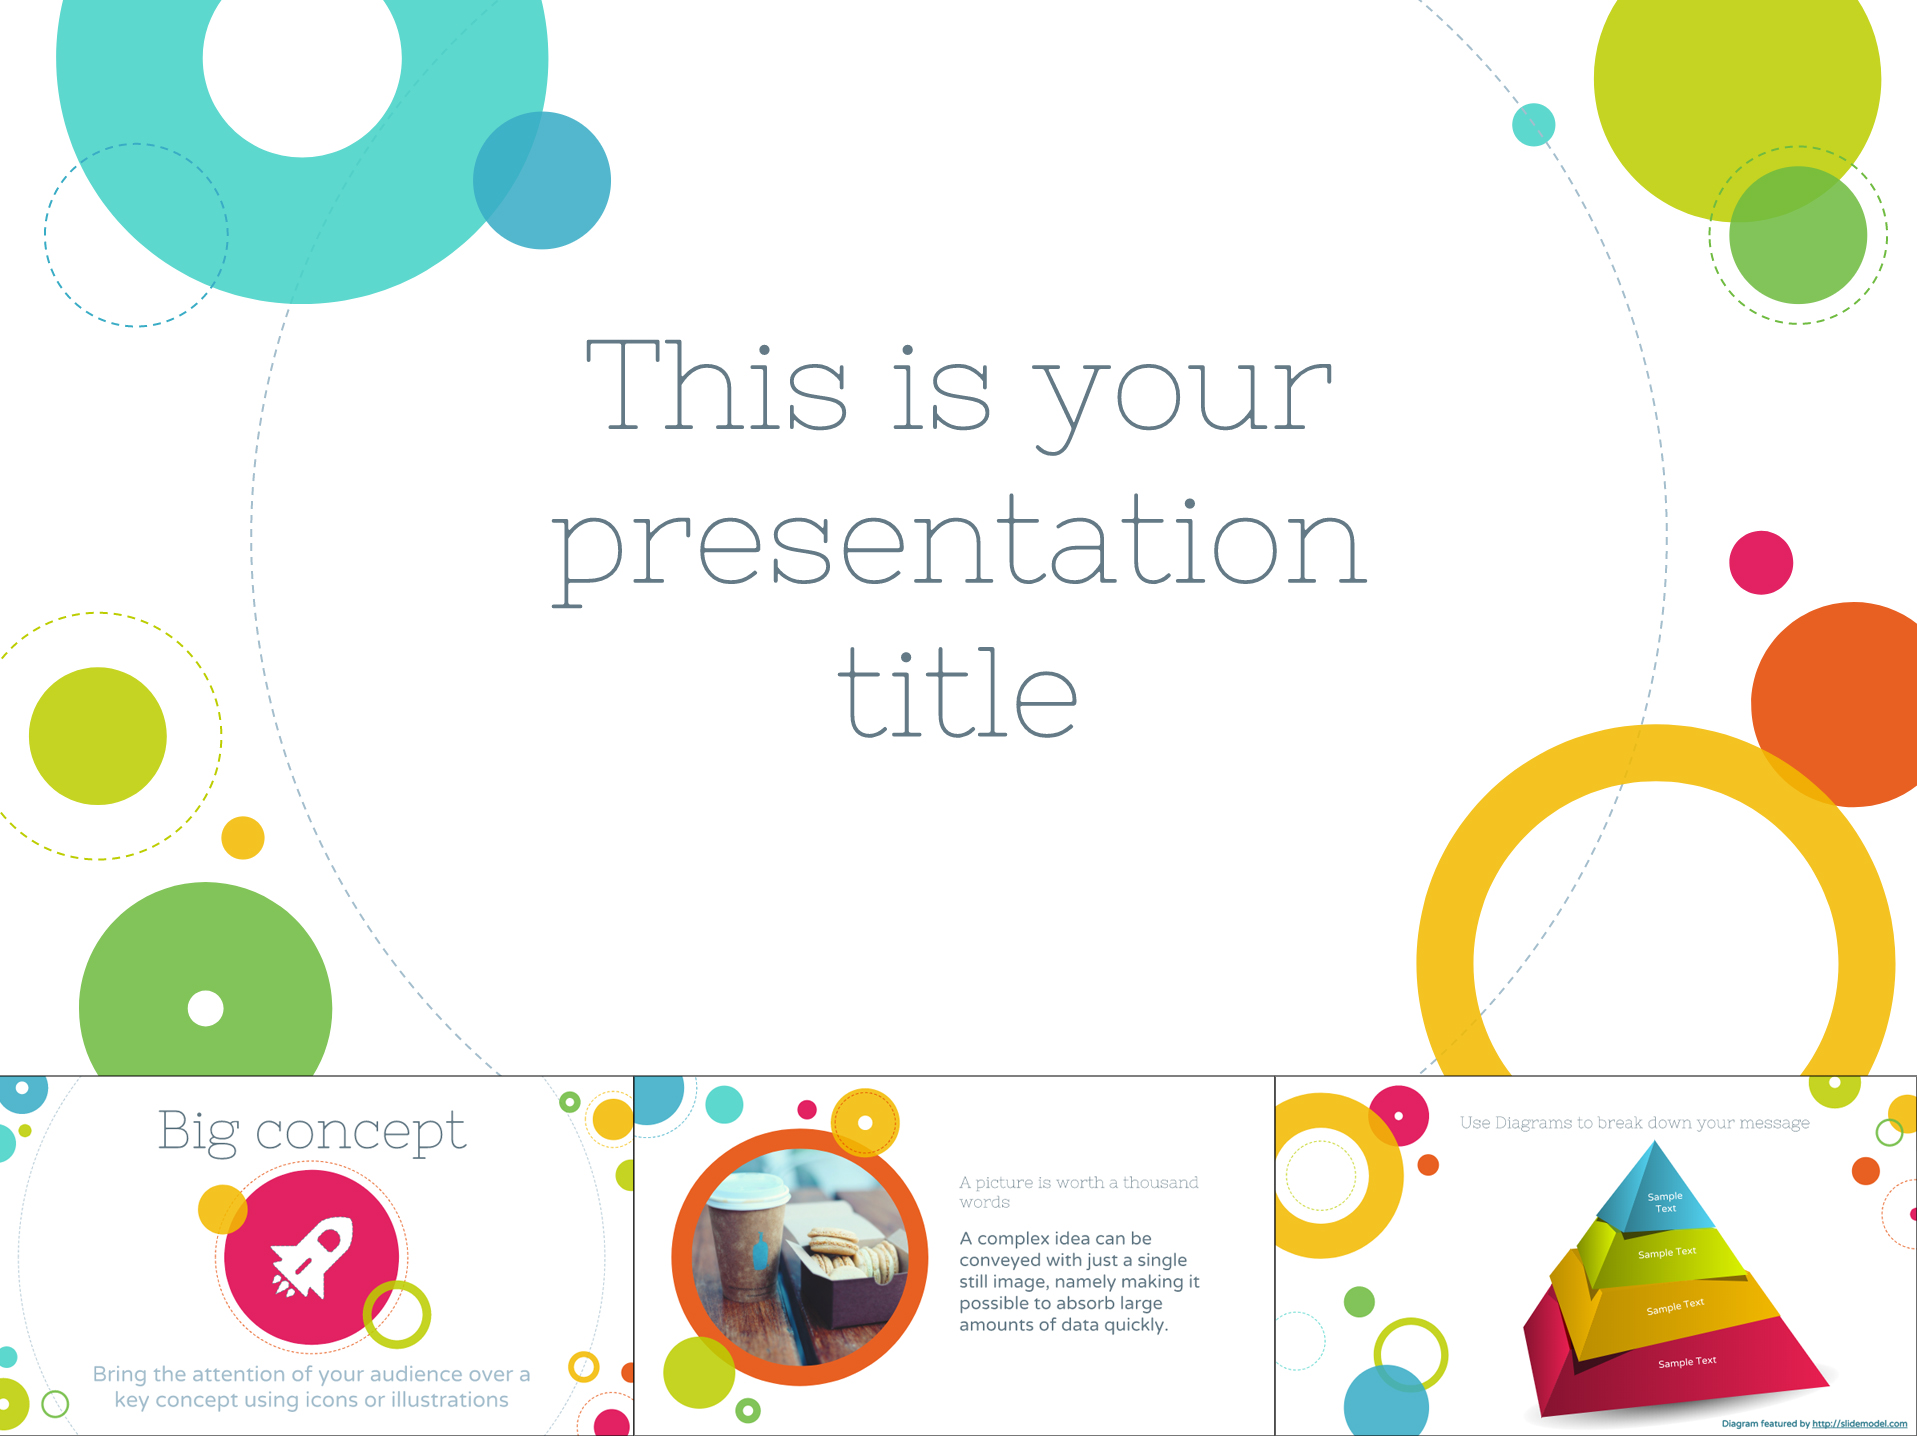 Cheerful Free Google Slides Template With Colorful Circles - The Internet Tips